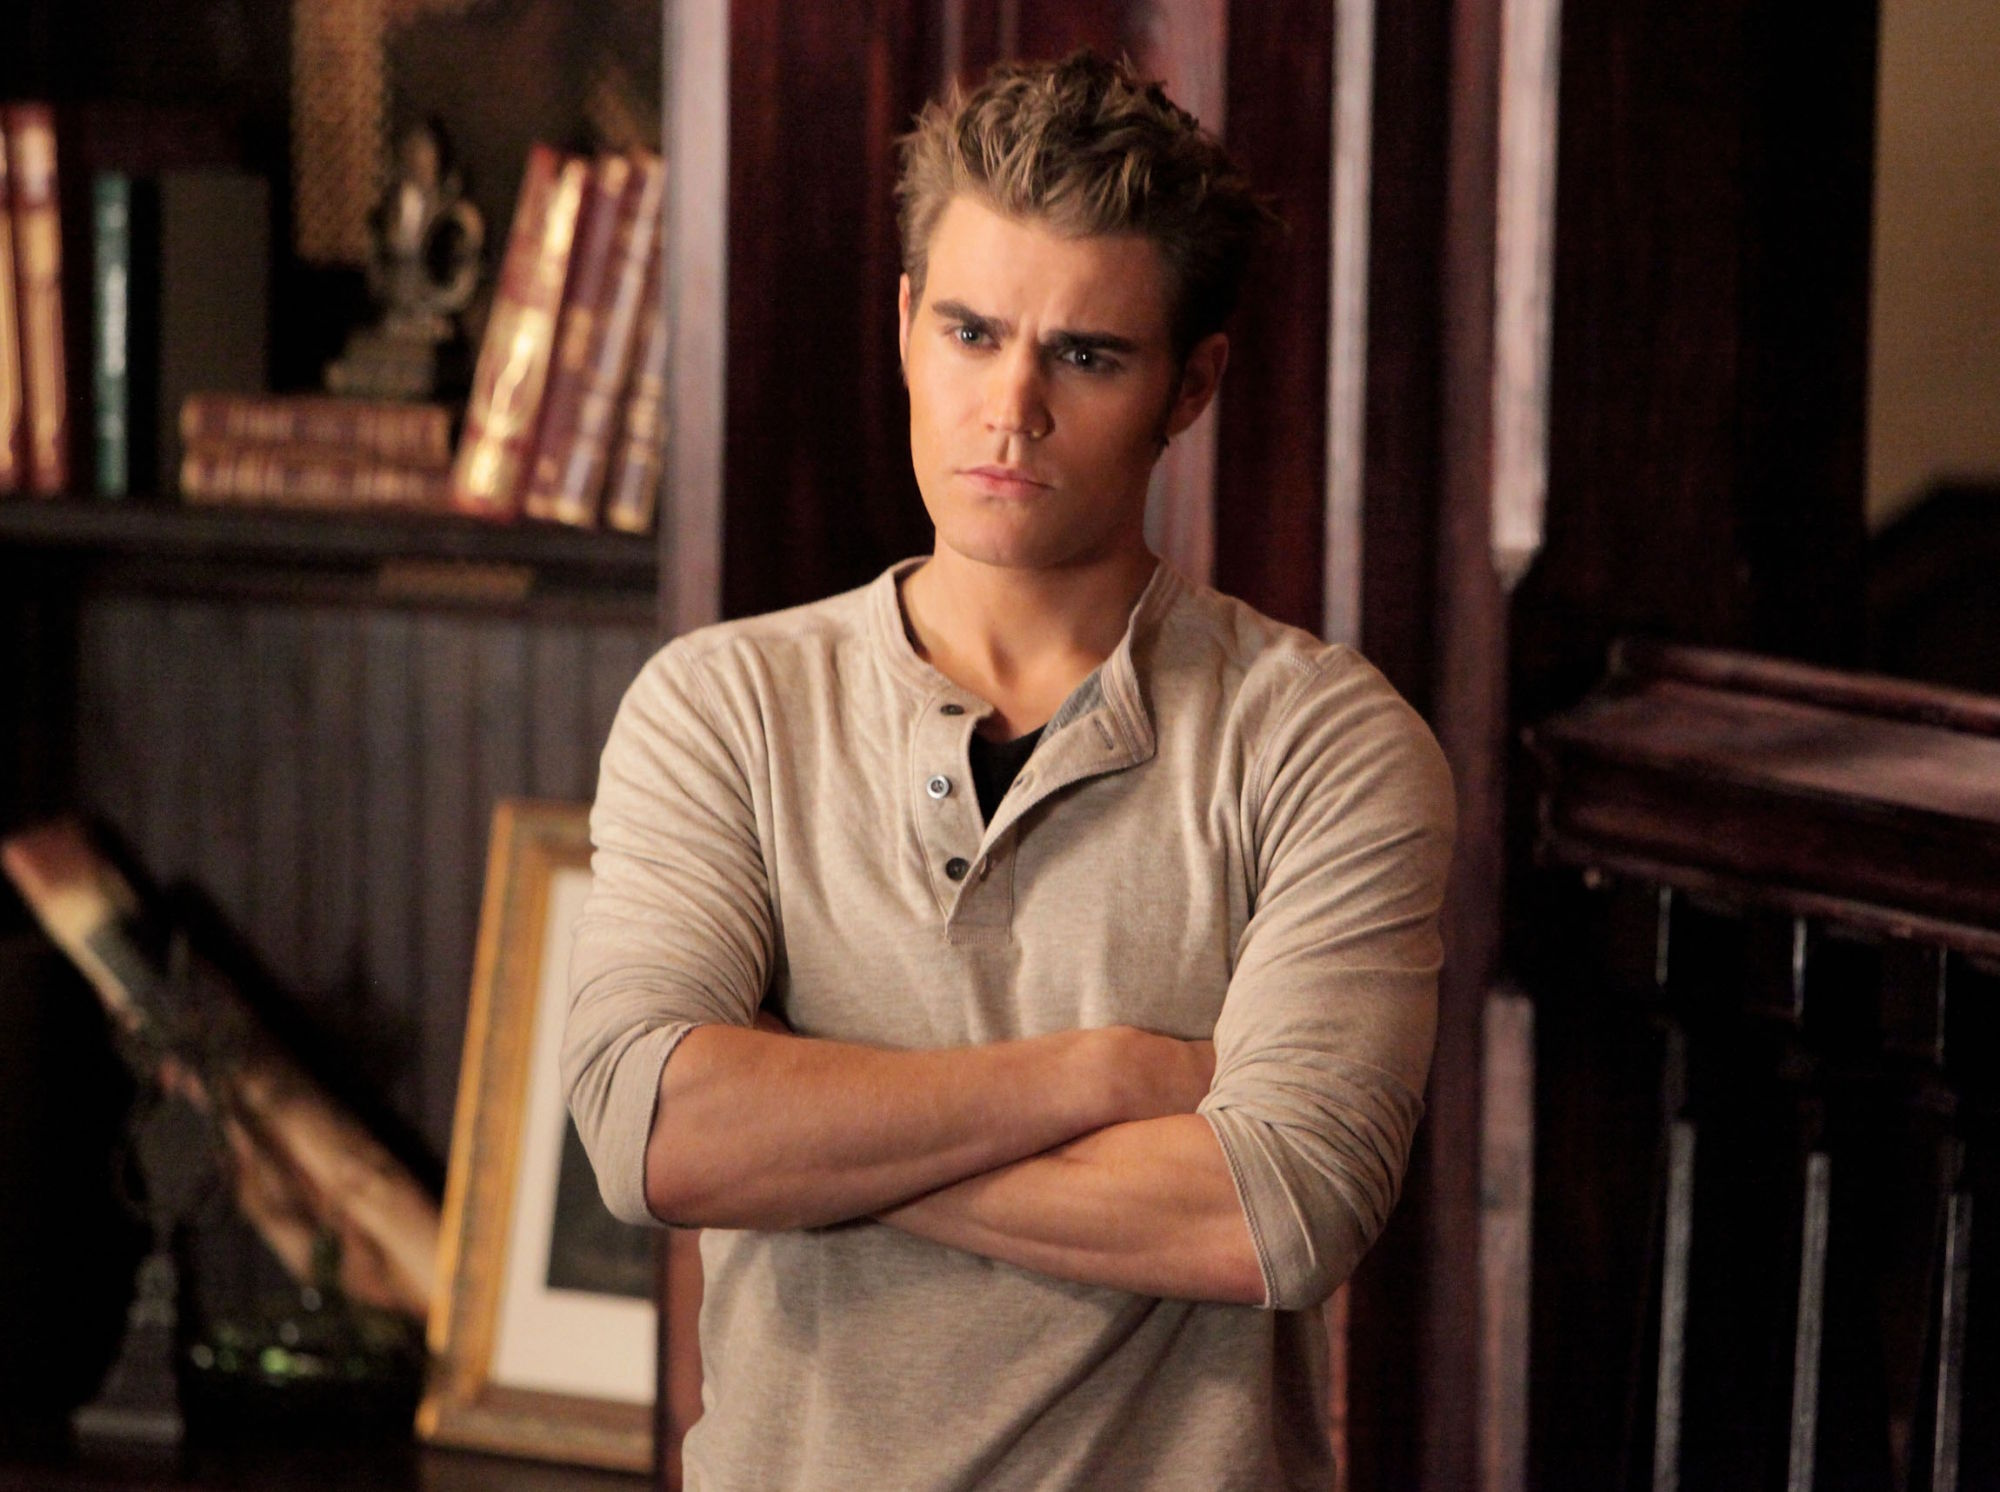 http://images4.fanpop.com/image/photos/16900000/2-10-The-Sacrifice-the-vampire-diaries-16900275-2000-1492.jpg